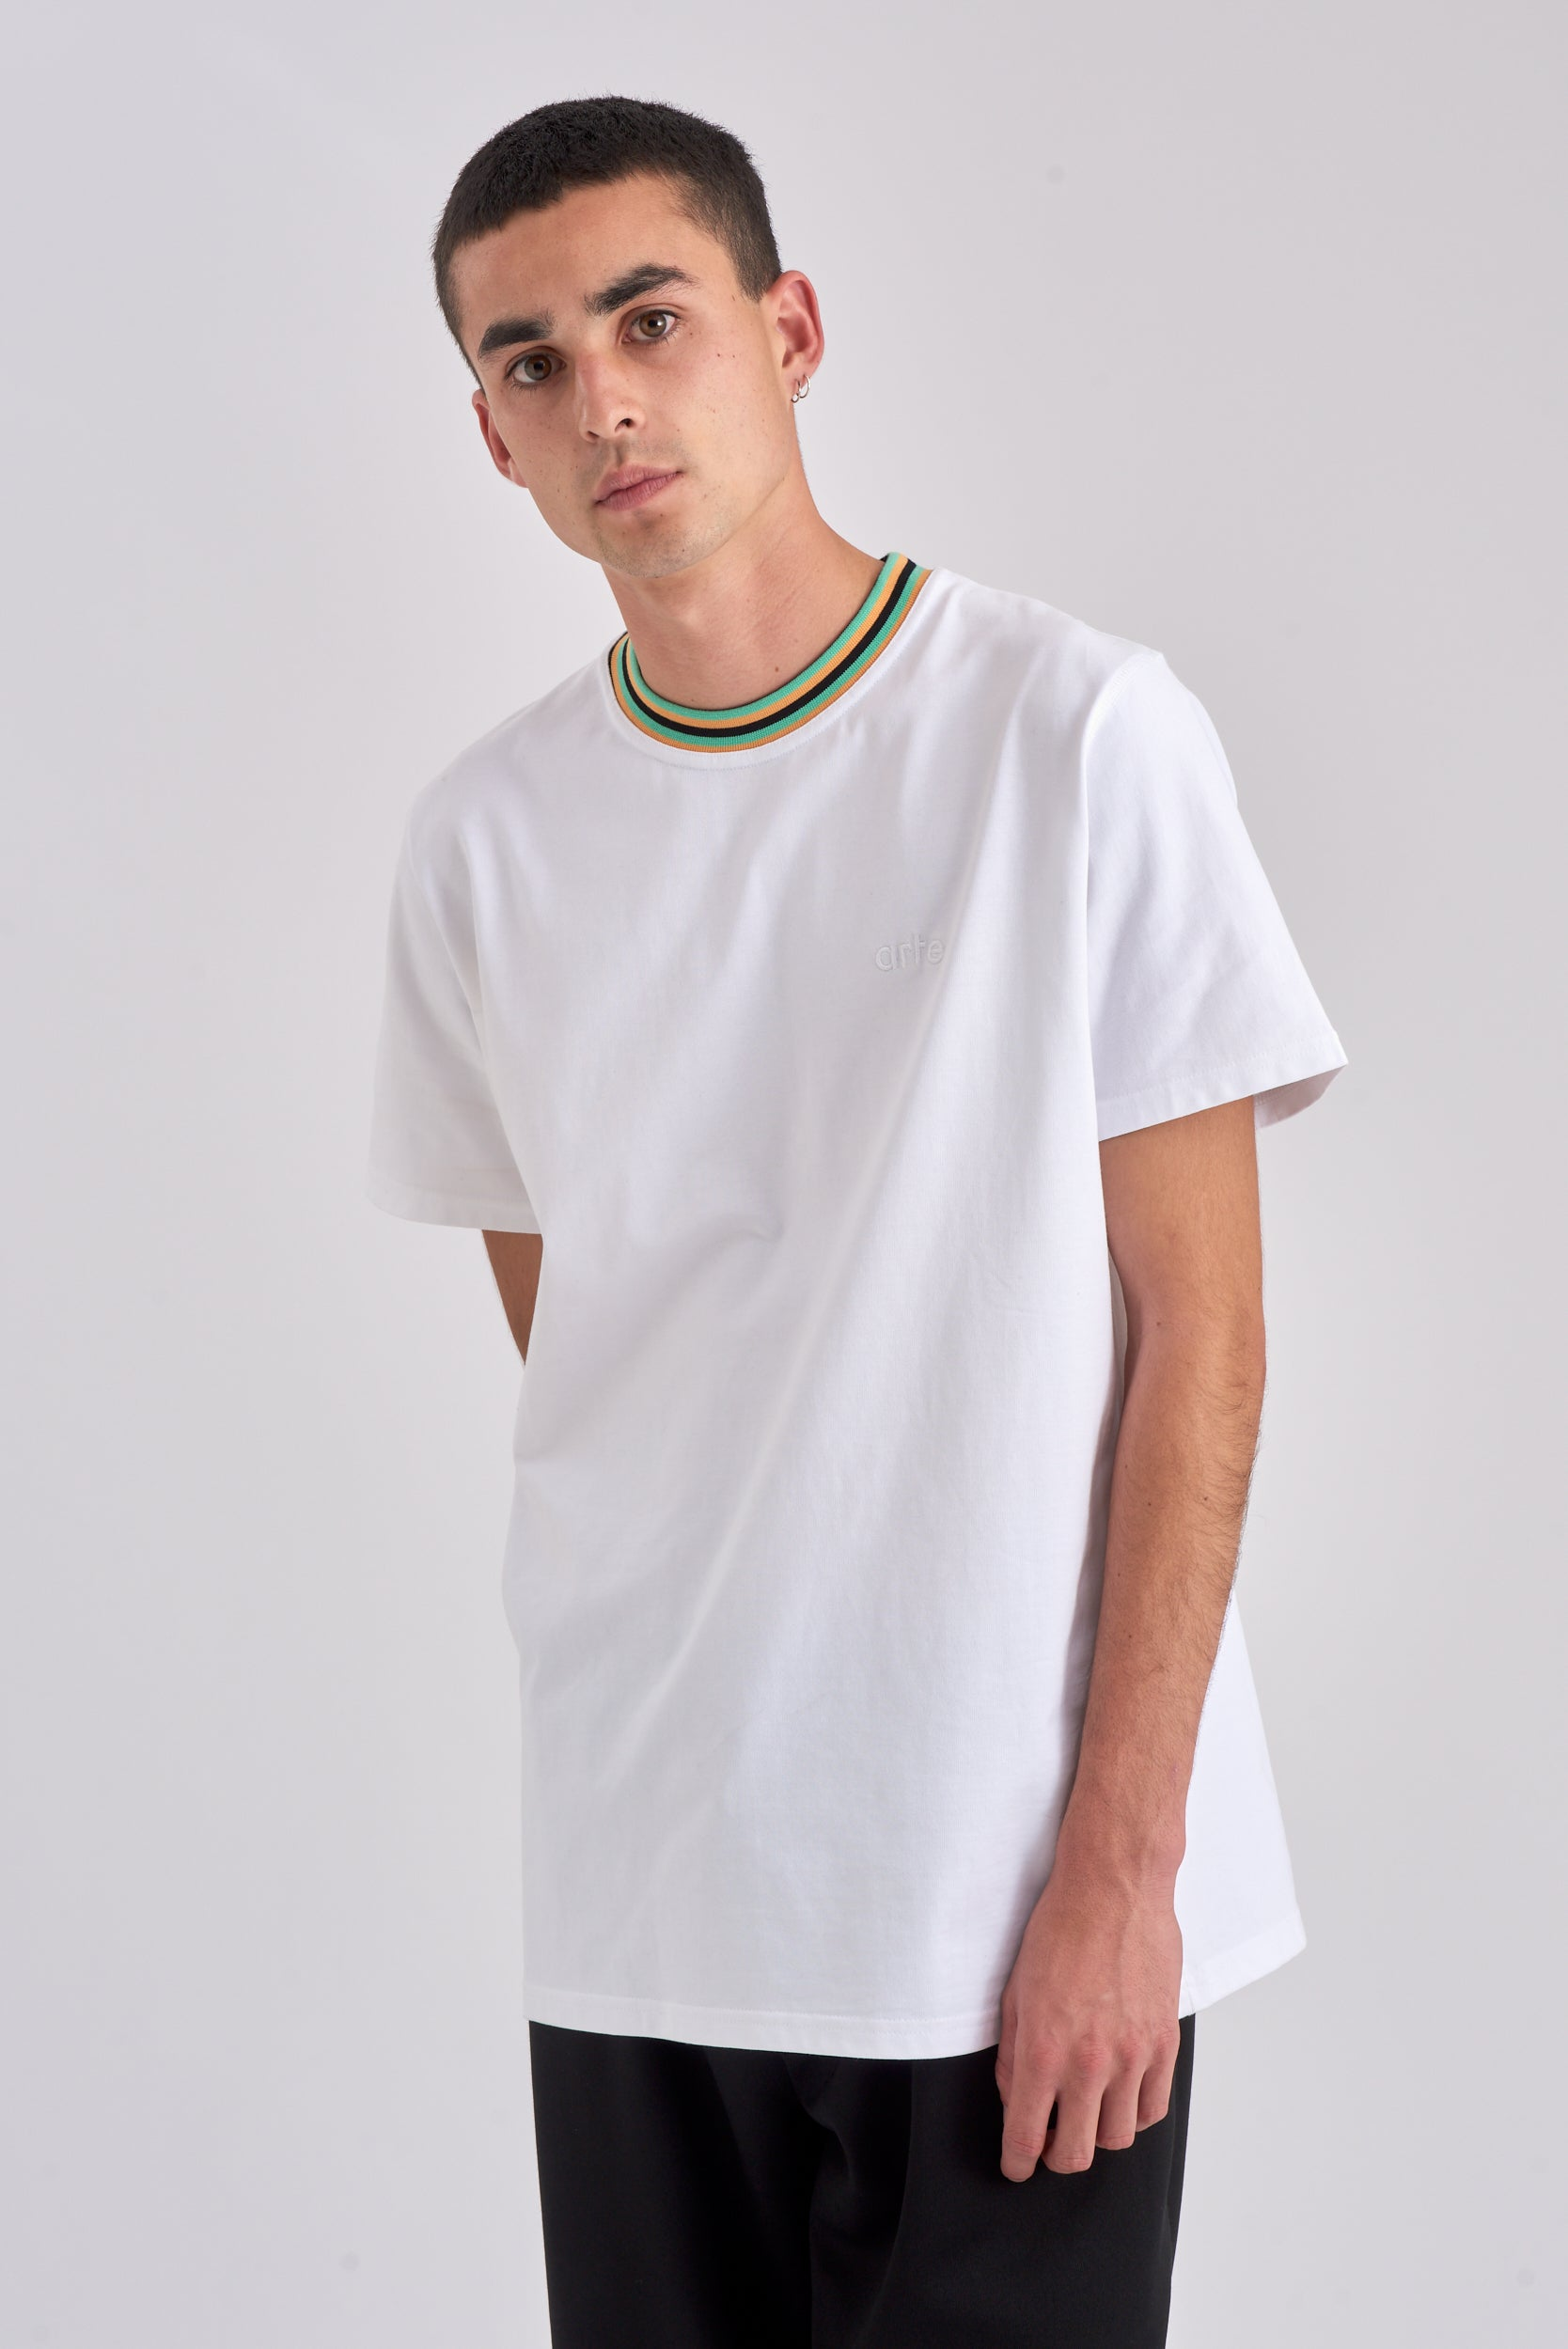 Tyler Collar White T-shirt